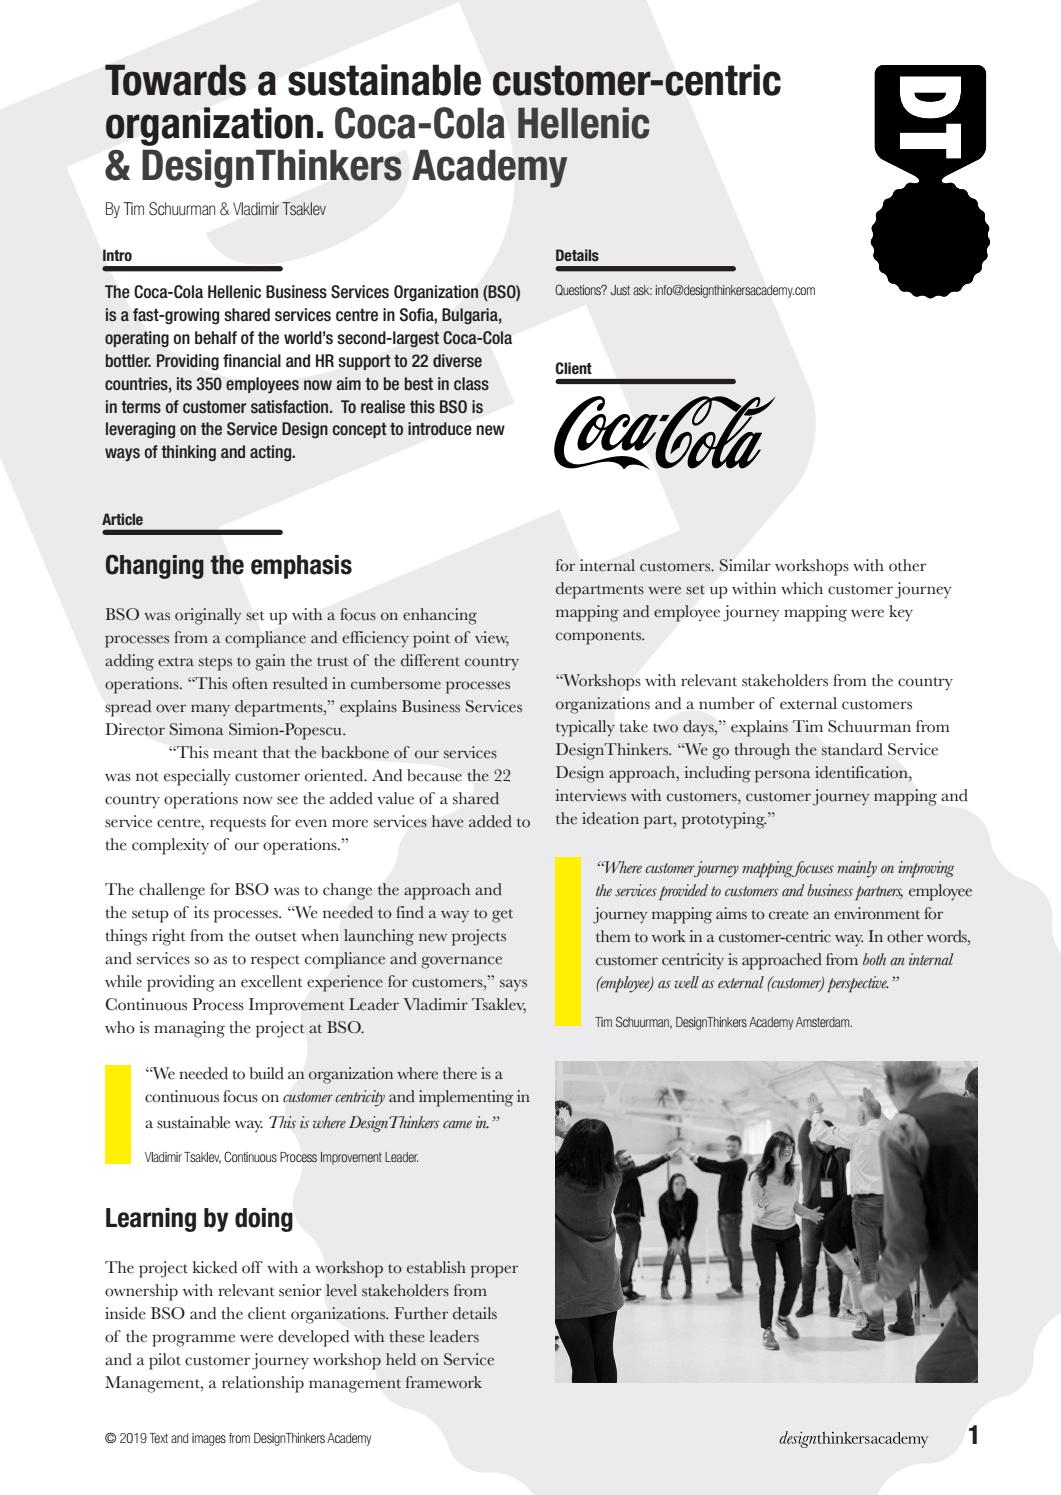 Coca-Cola Hellenic & DesignThinkers Academy | Towards a sustainable customer-centric organization